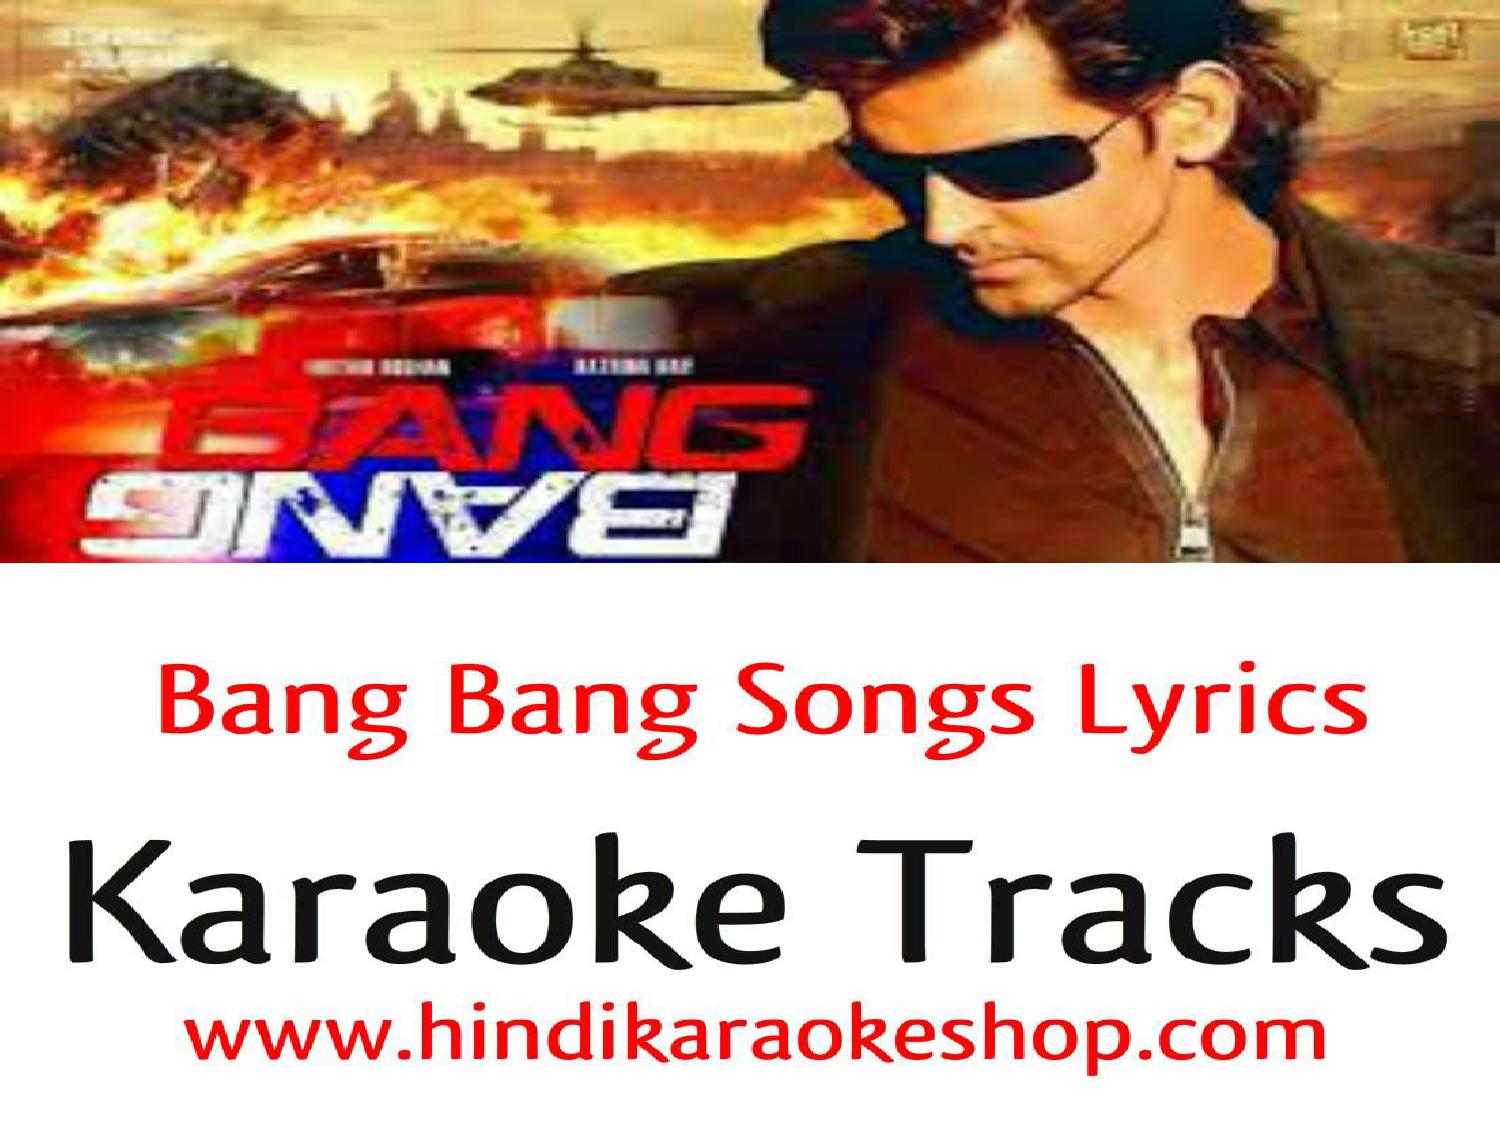 Bang bang songs hindi karaoke with lyrics by bradpitt753 - issuu